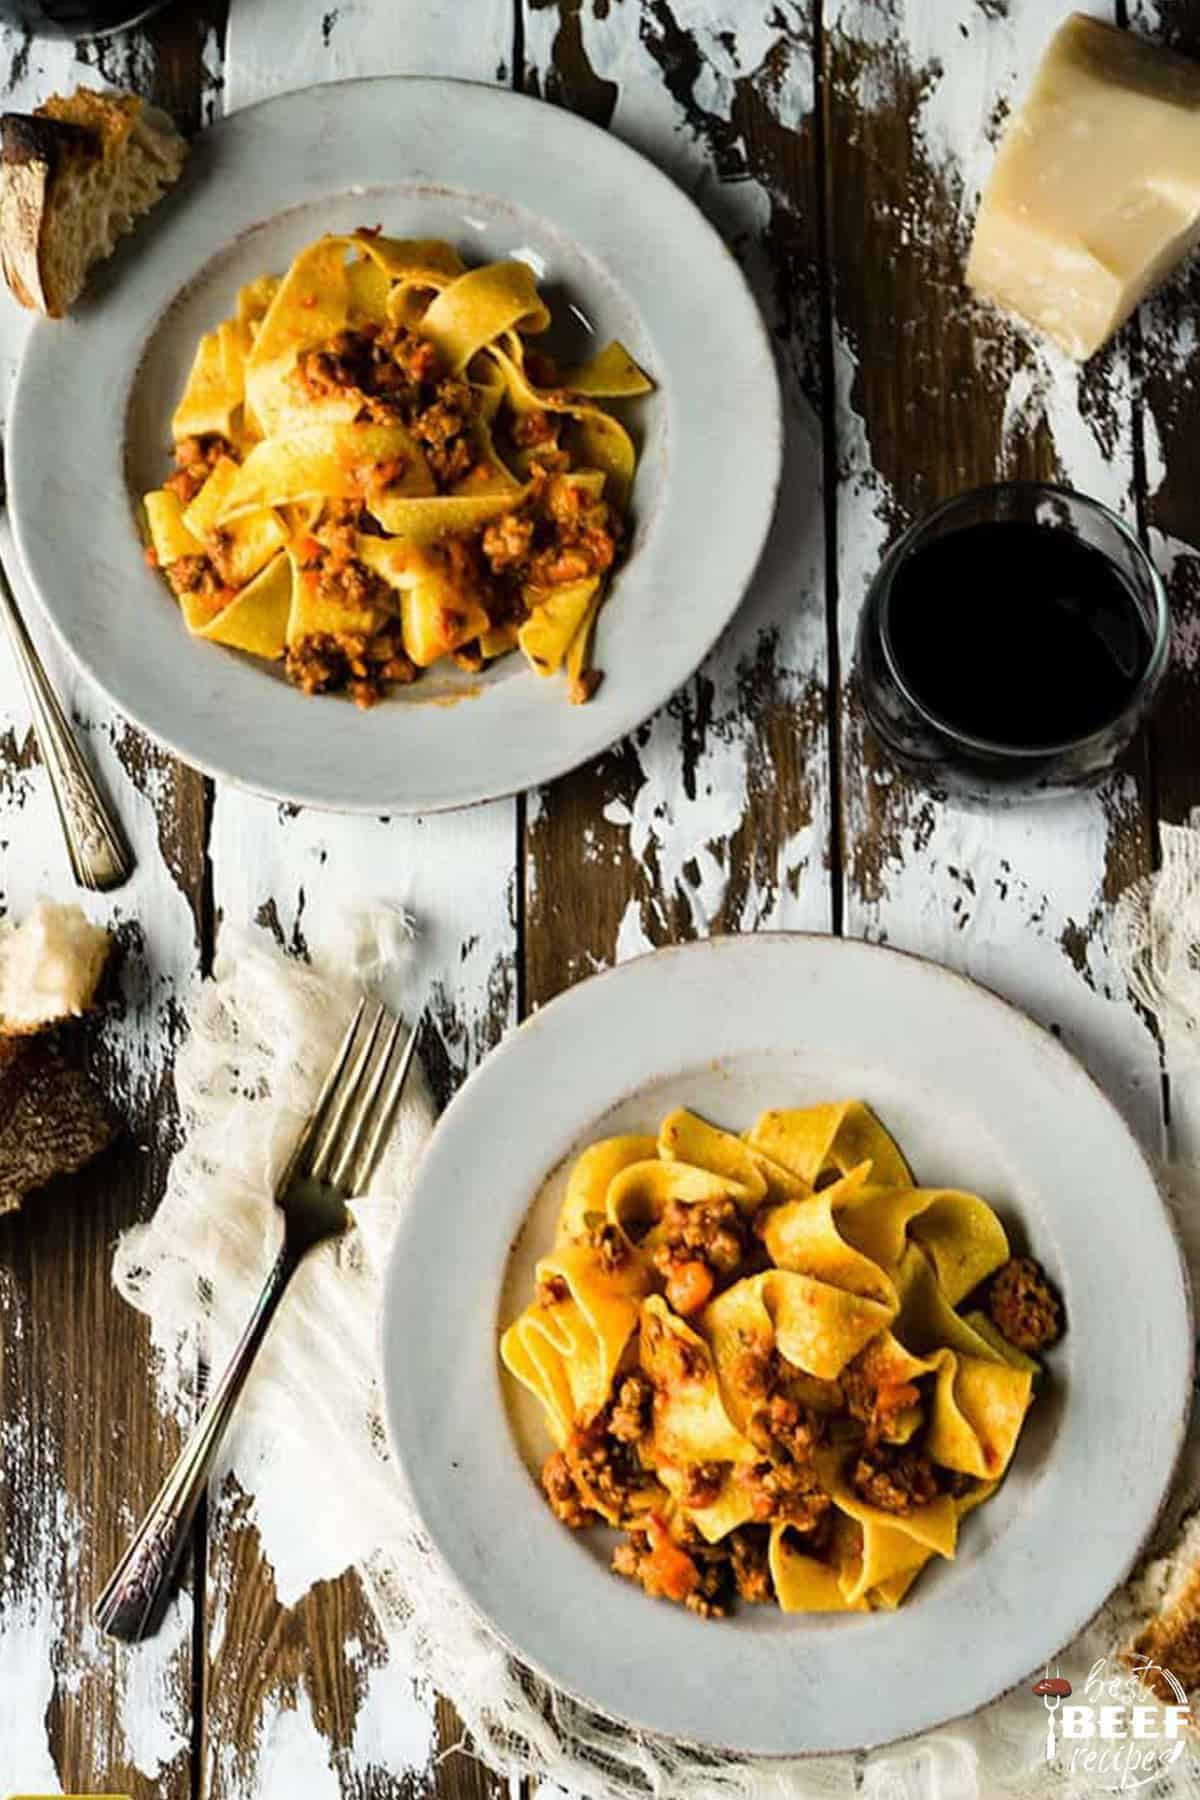 Two plates of beef bolognese with pappardelle pasta